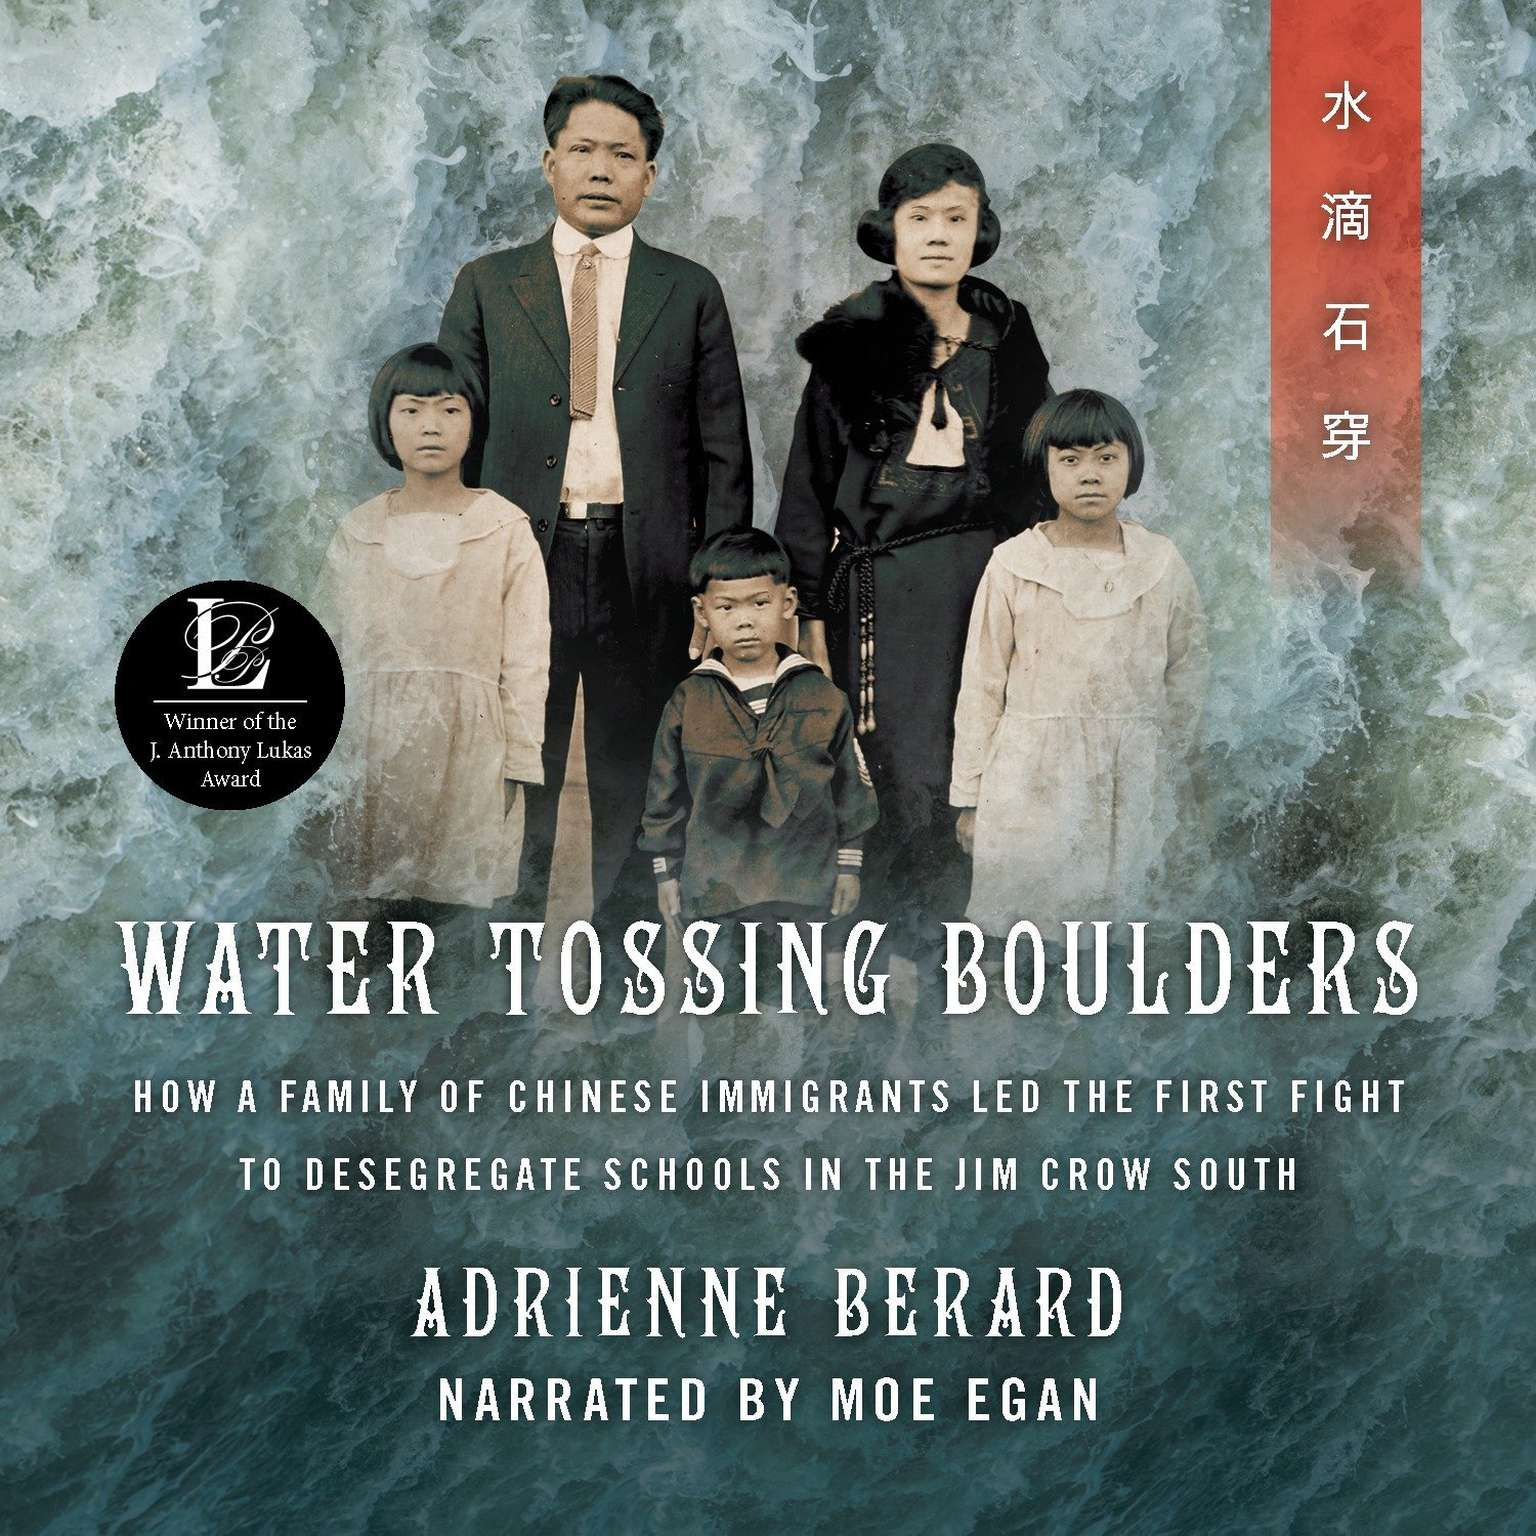 Printable Water Tossing Boulders: How a Family of Chinese Immigrants Led the First Fight to Desegregate Schools in the Jim Crow South Audiobook Cover Art